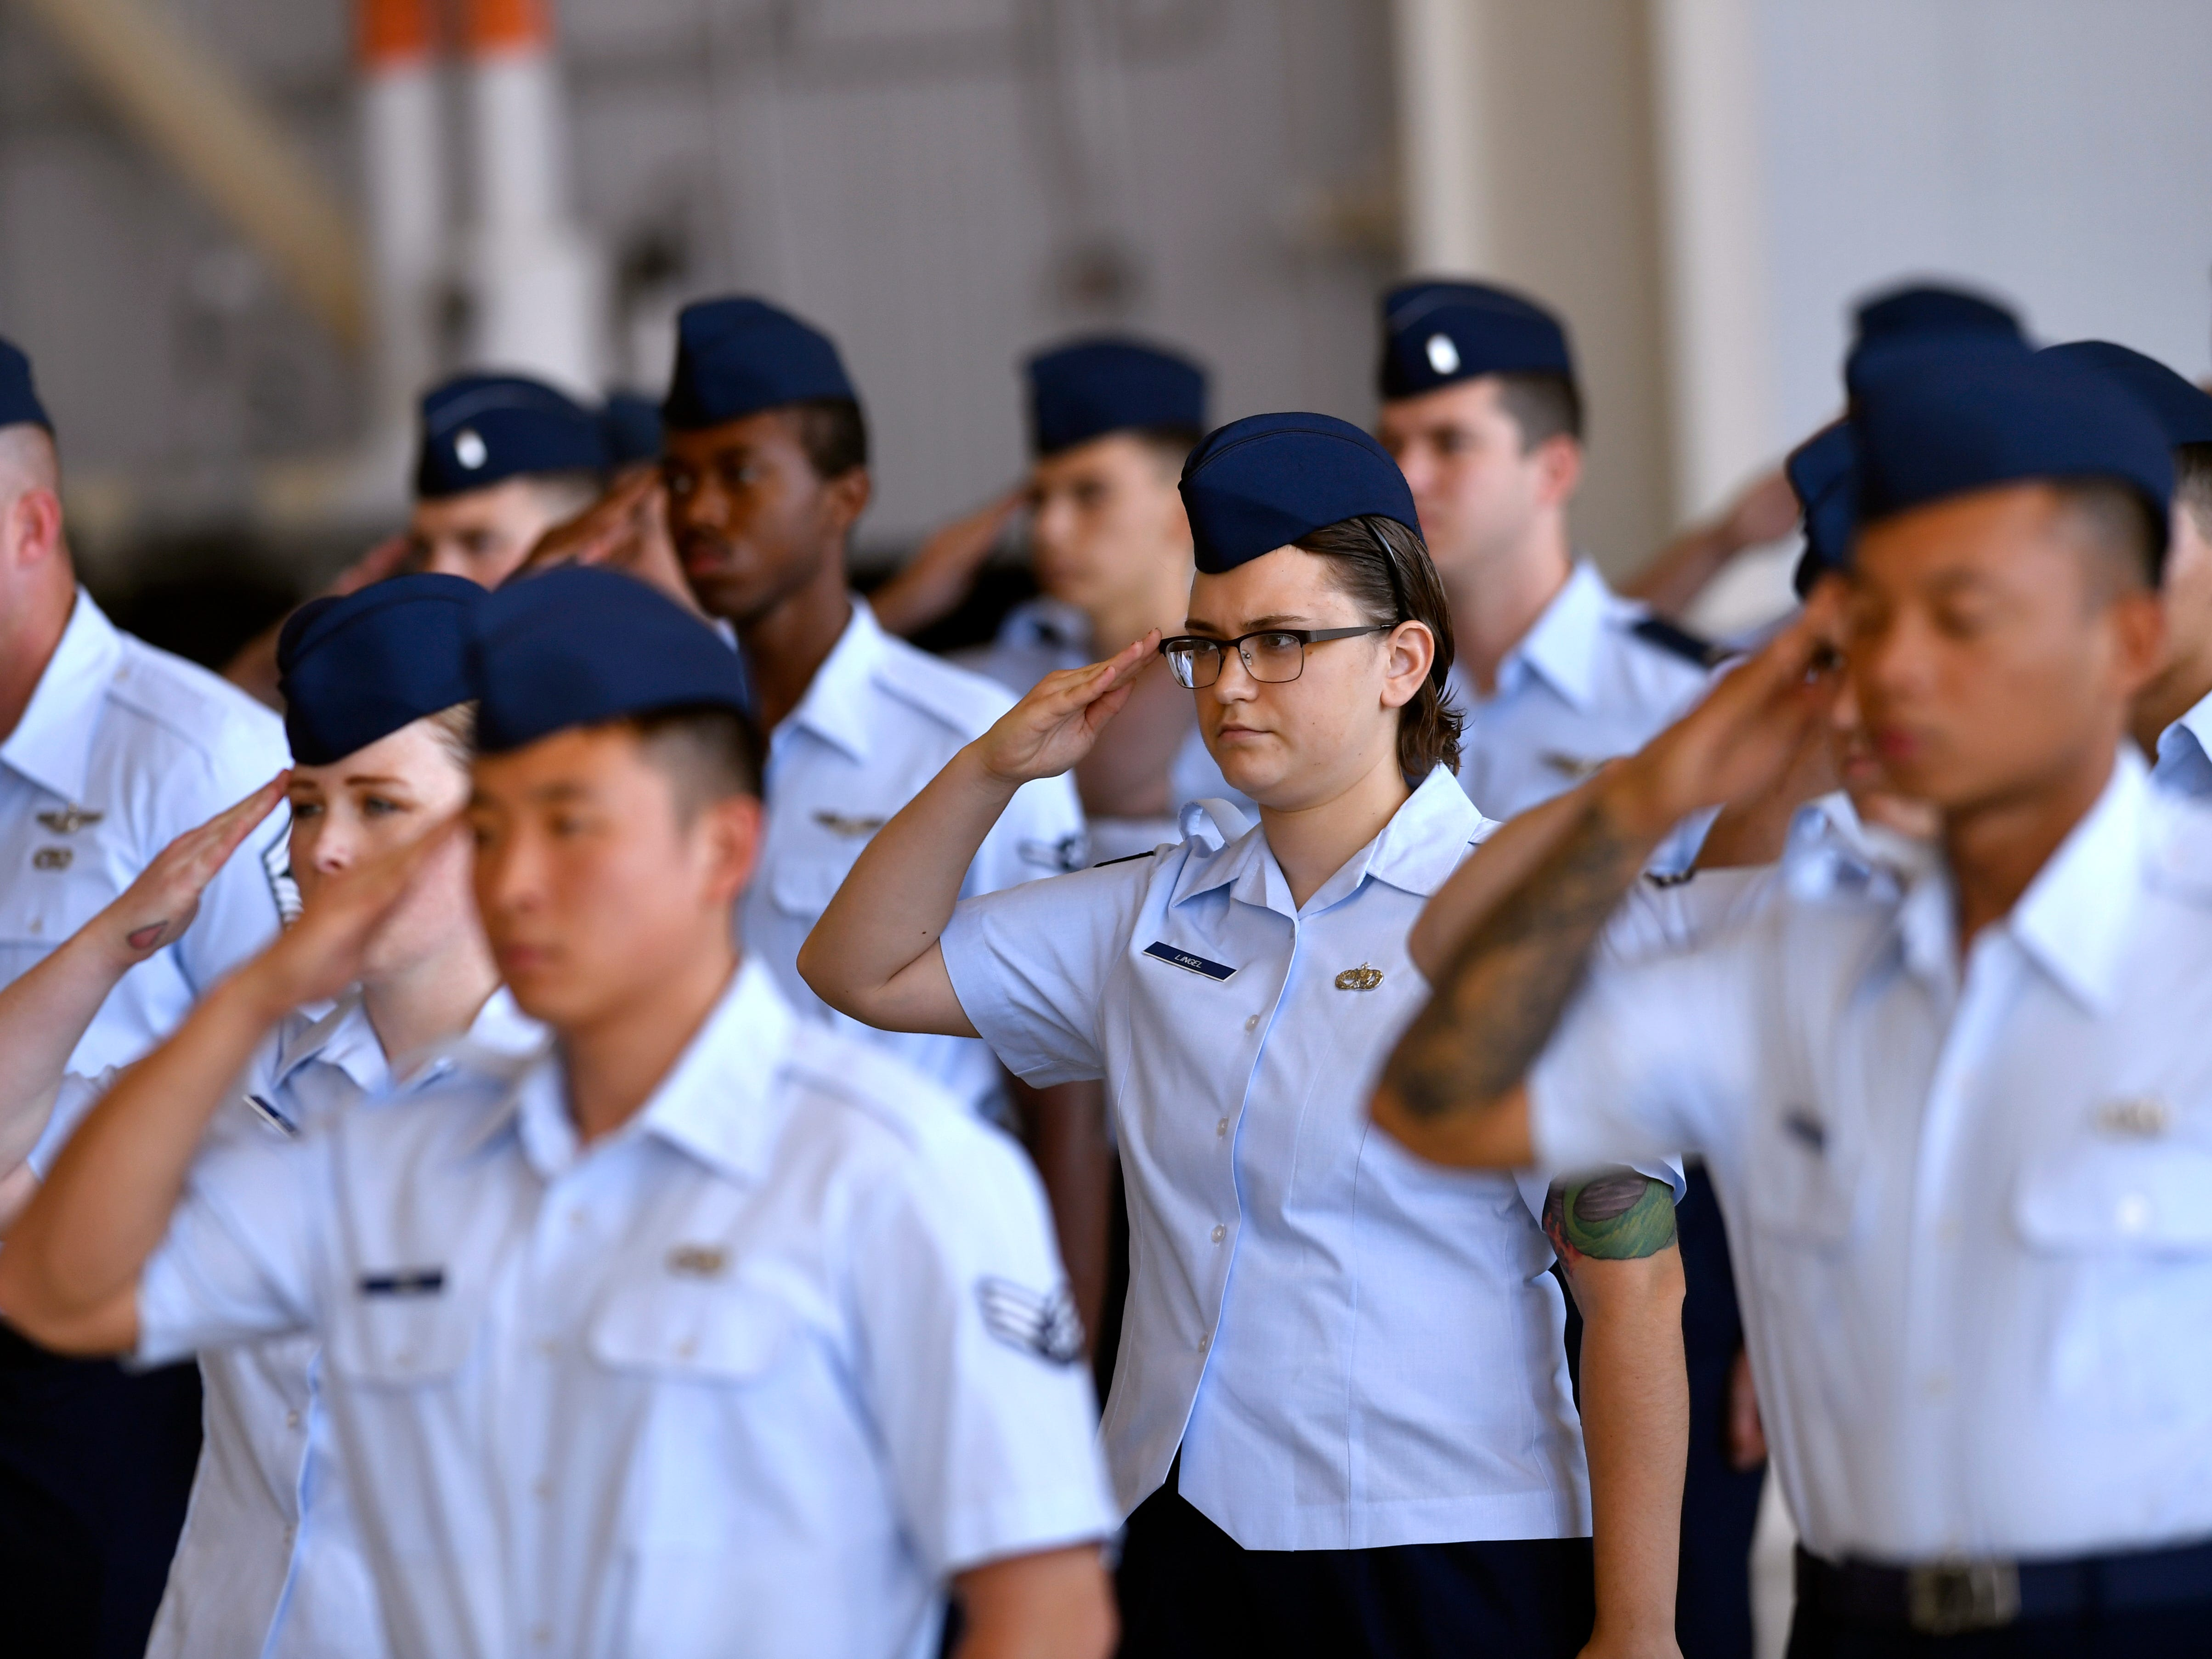 Members of the 317th Airlift Wing salute their new commander for the first time during the unit's assumption of command Friday August 3, 2018 at Dyess Air Force Base.  Col. Jeffrey Menasco was given command of the wing by Major Gen. Sam Barrett, Commander of the 18th Air Force.